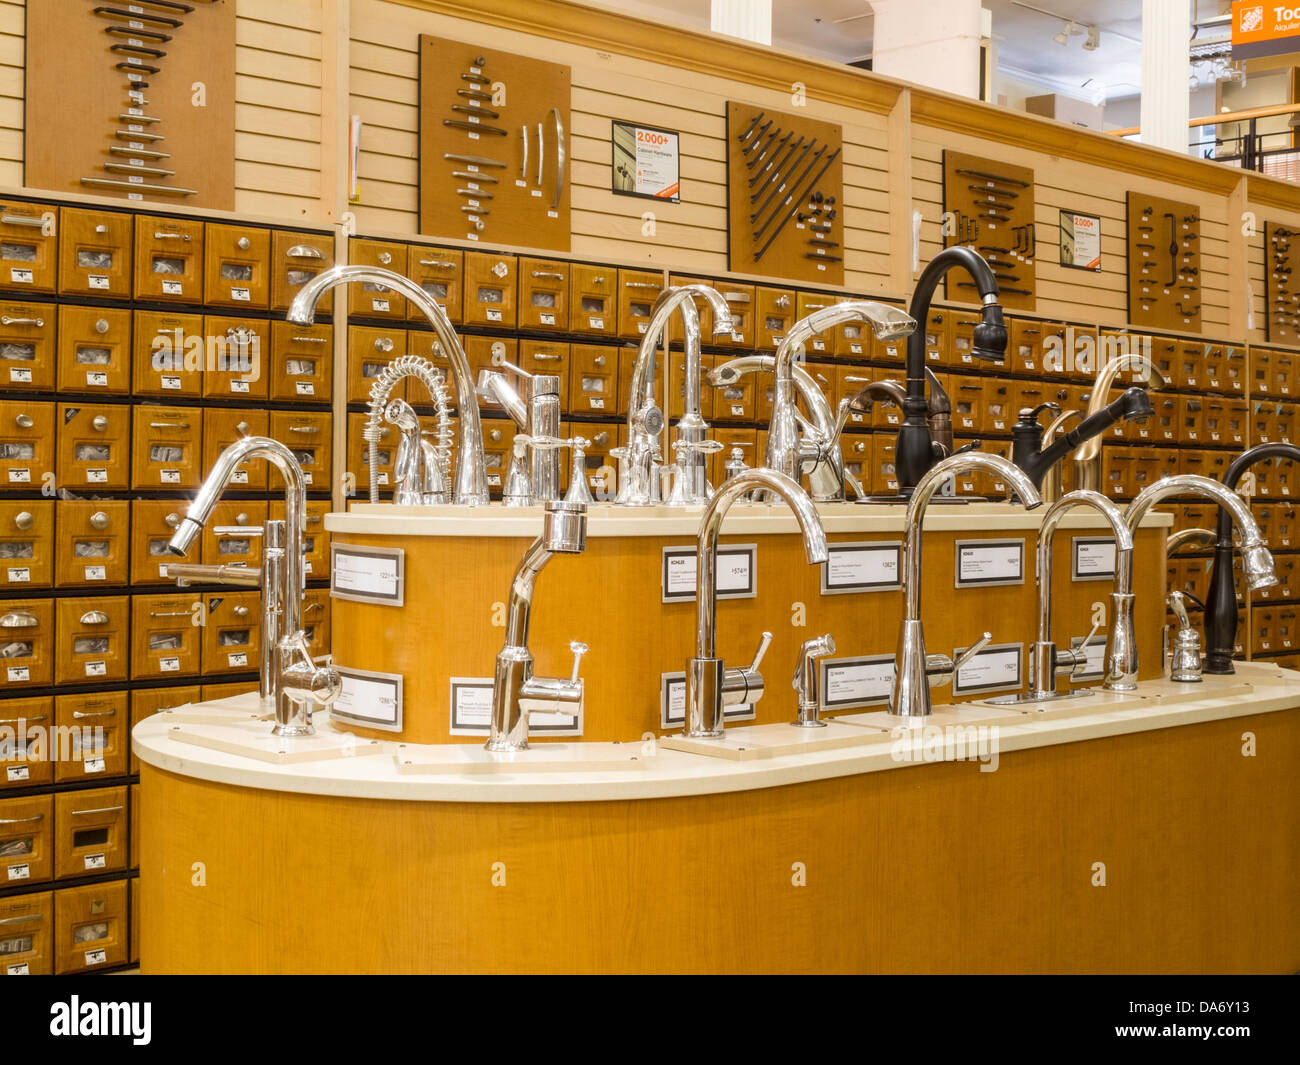 Faucet Display in Home Depot, NYC Stock Photo, Royalty Free Image ...